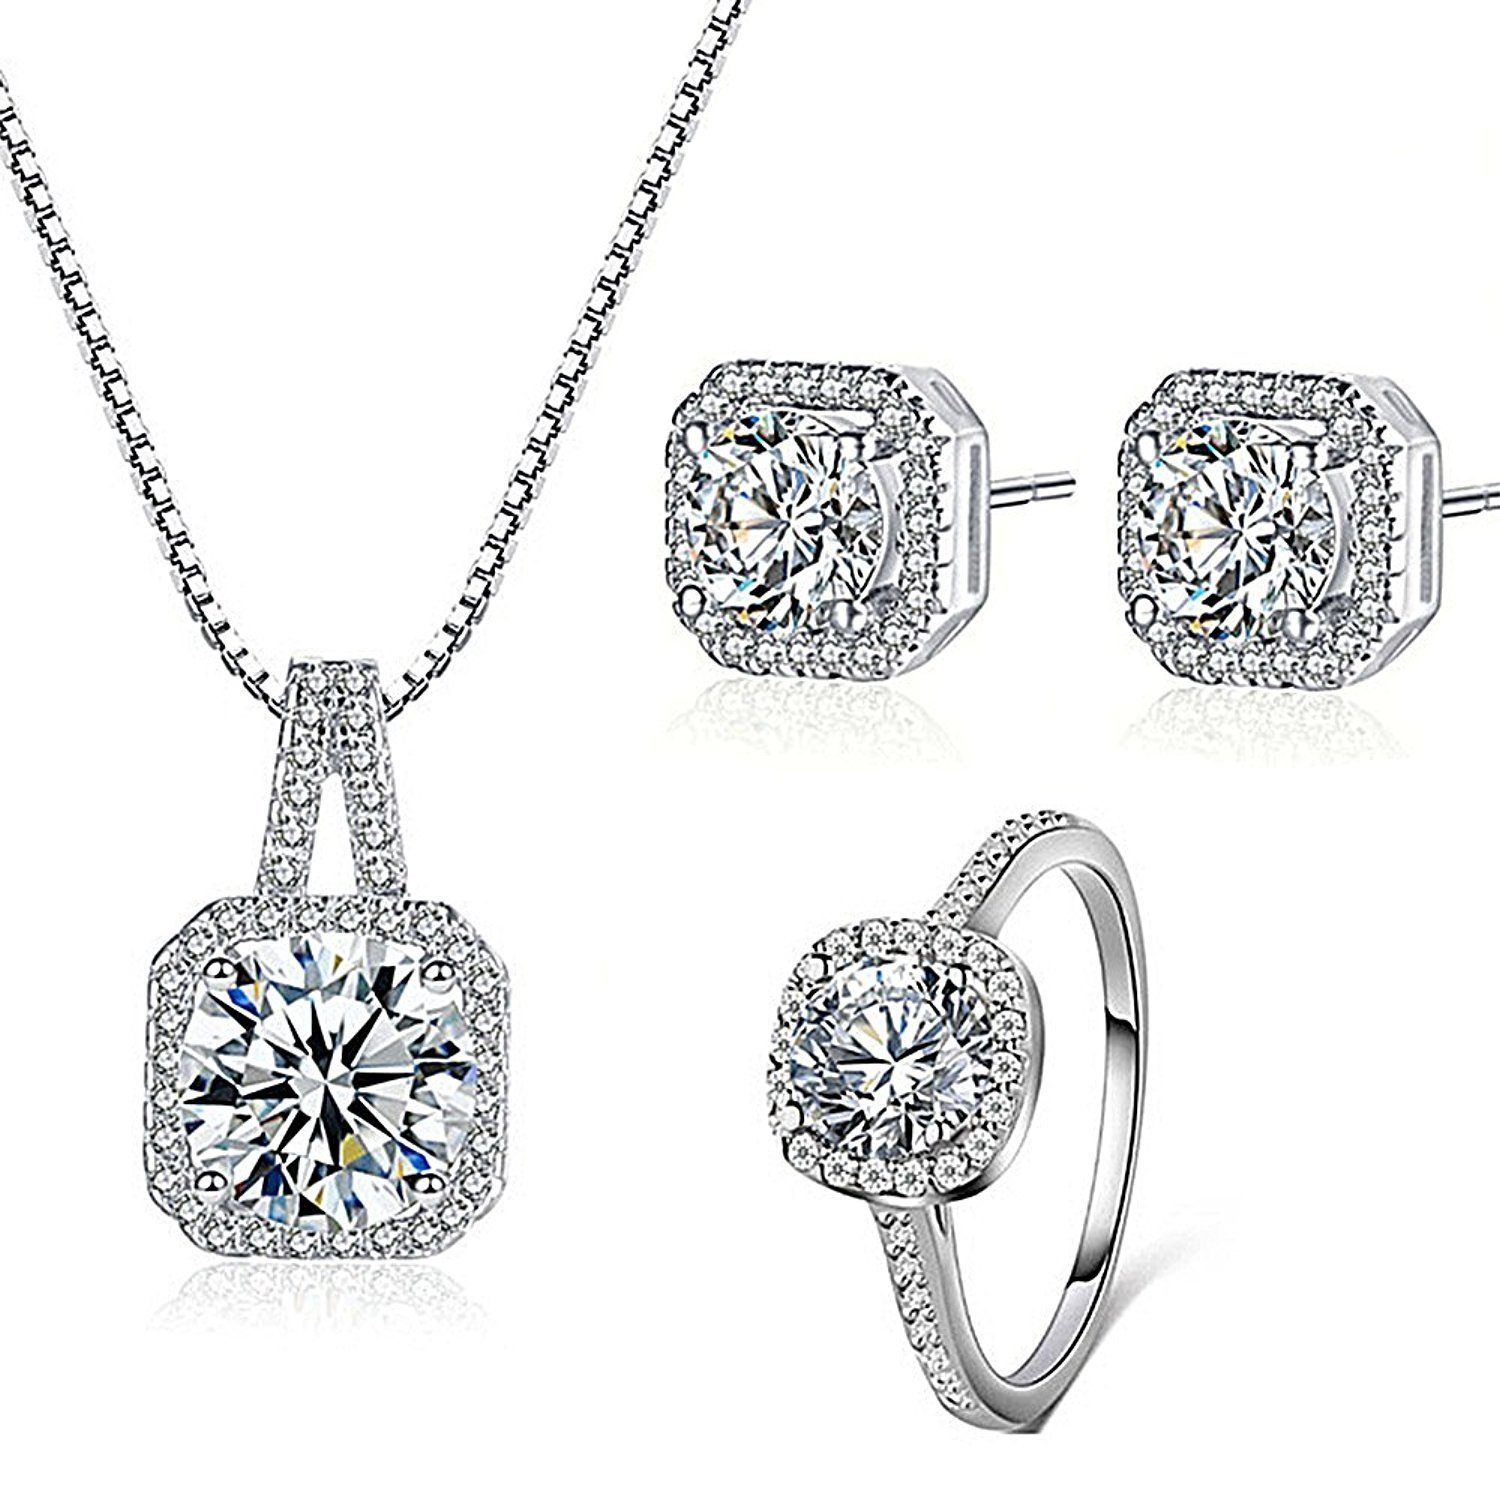 Majesto 925 Silver Plated Necklace Pendant Halo Cushion Cut Bridal Engagement Jewelry Set For Women Gift